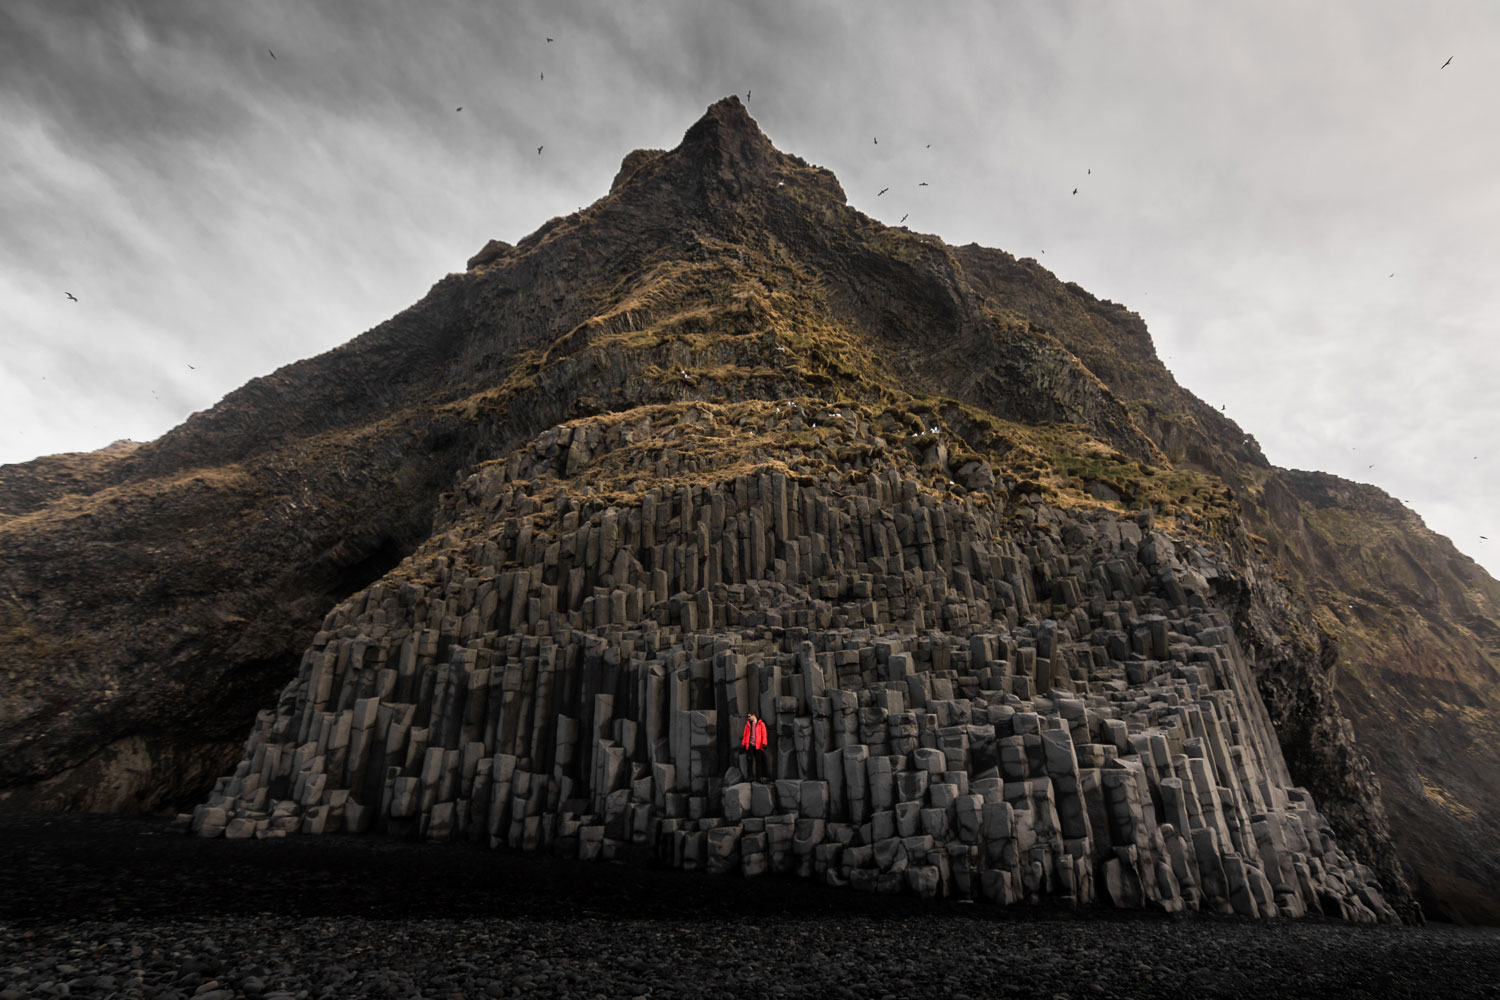 REYNISFJARA BEACH in iceland with a figure wearing a red Arcteryx beta sv jacket